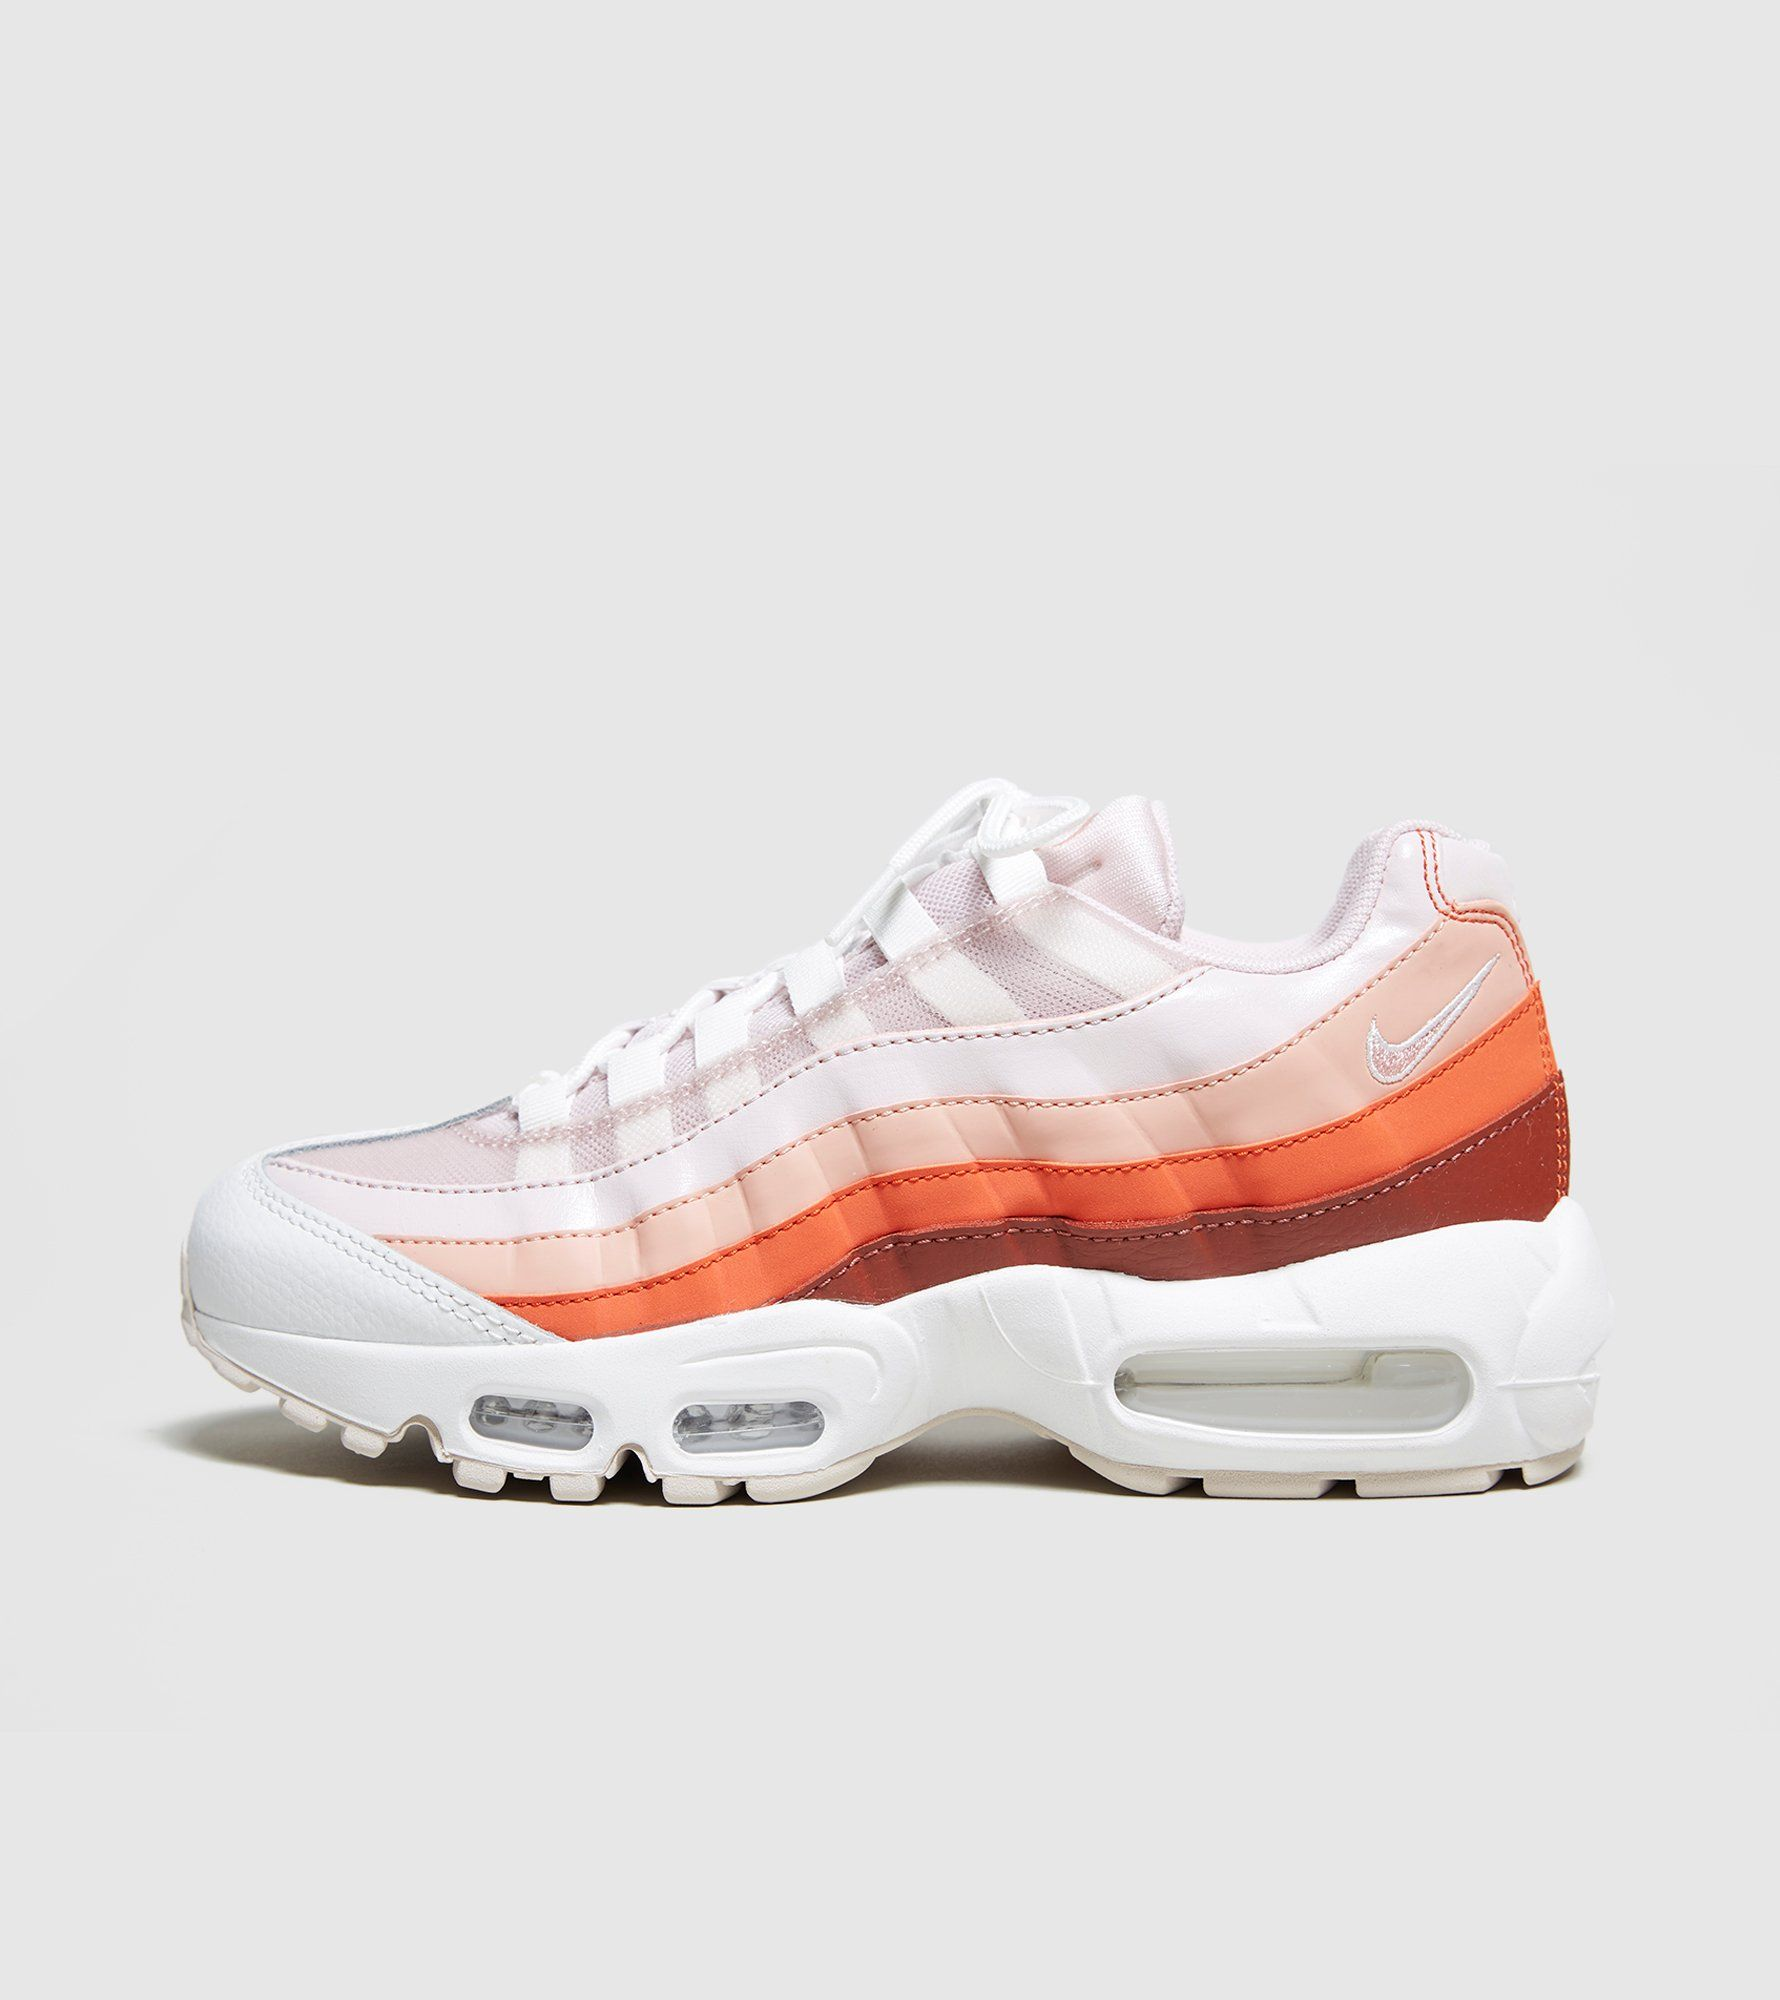 quality design a5a57 95508 ... where can i buy nike air max 95 womens size a0c99 bd81f